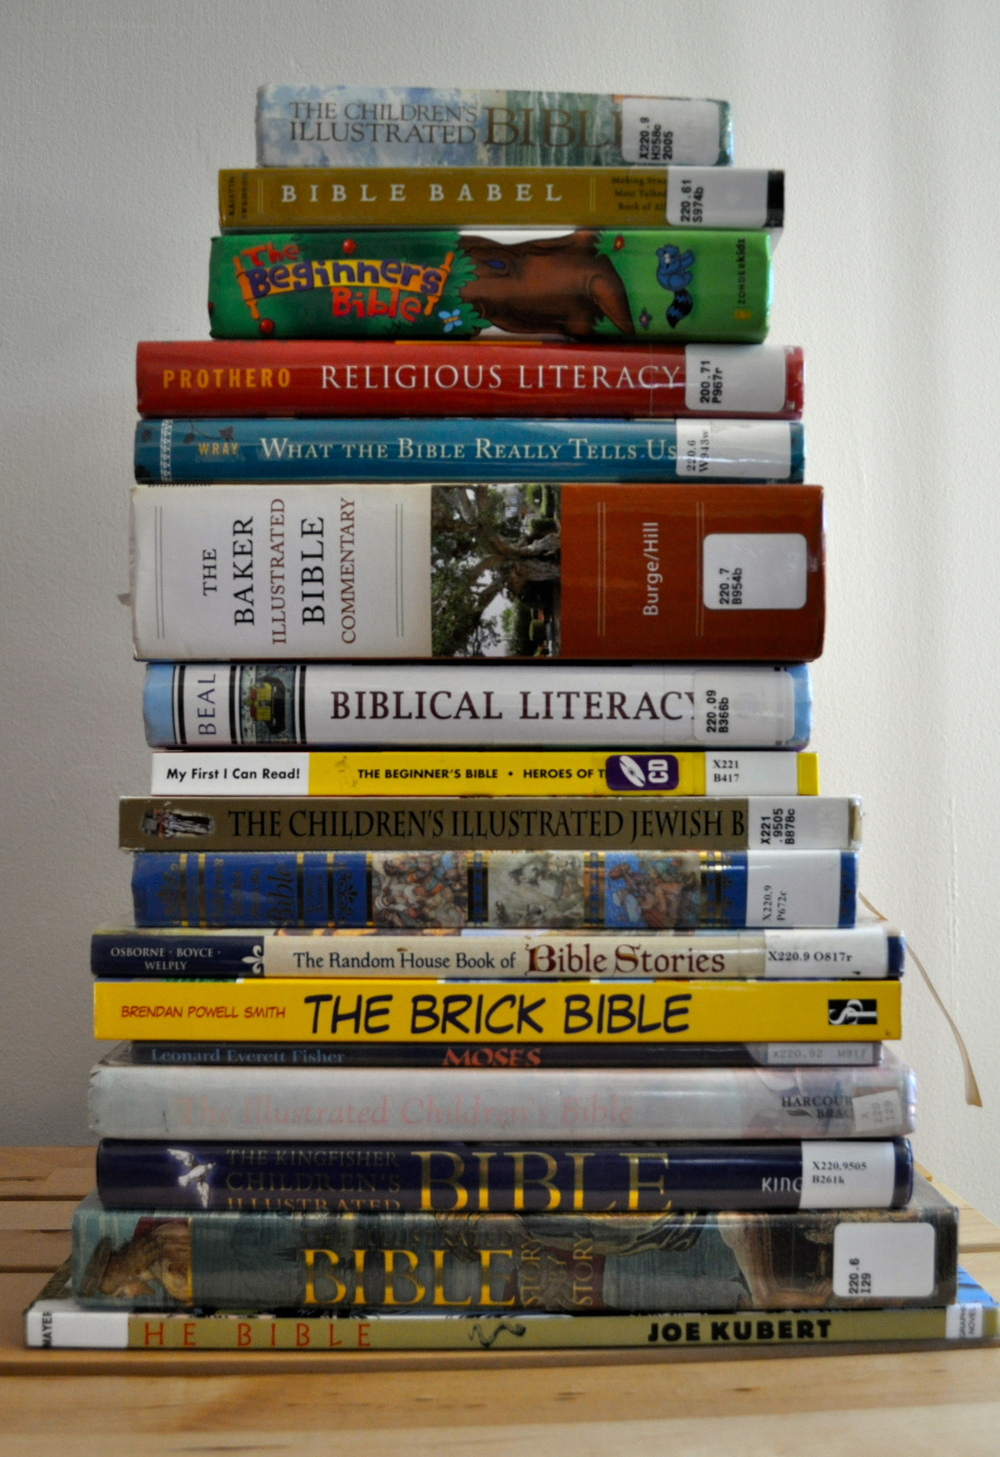 Tower of Bible